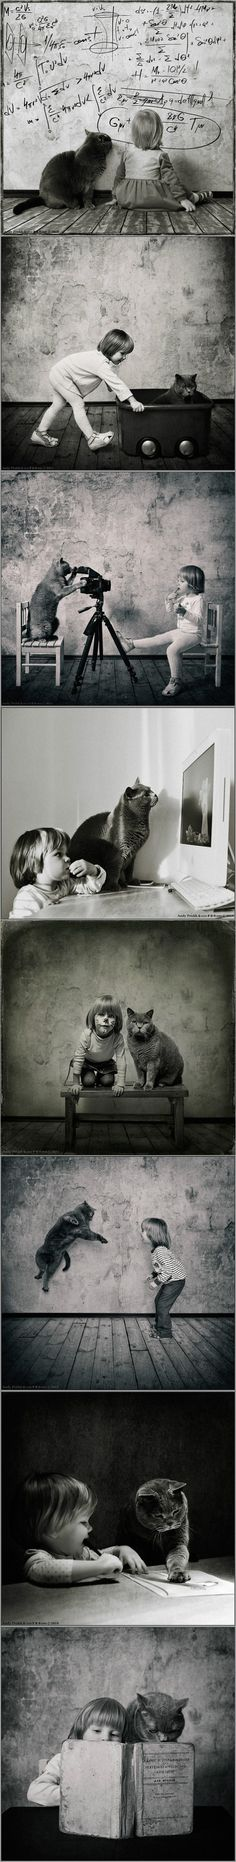 'Once upon a time a cat had a girl and a girl had a cat... And together they were two.'  Photography by Andy Prokh.